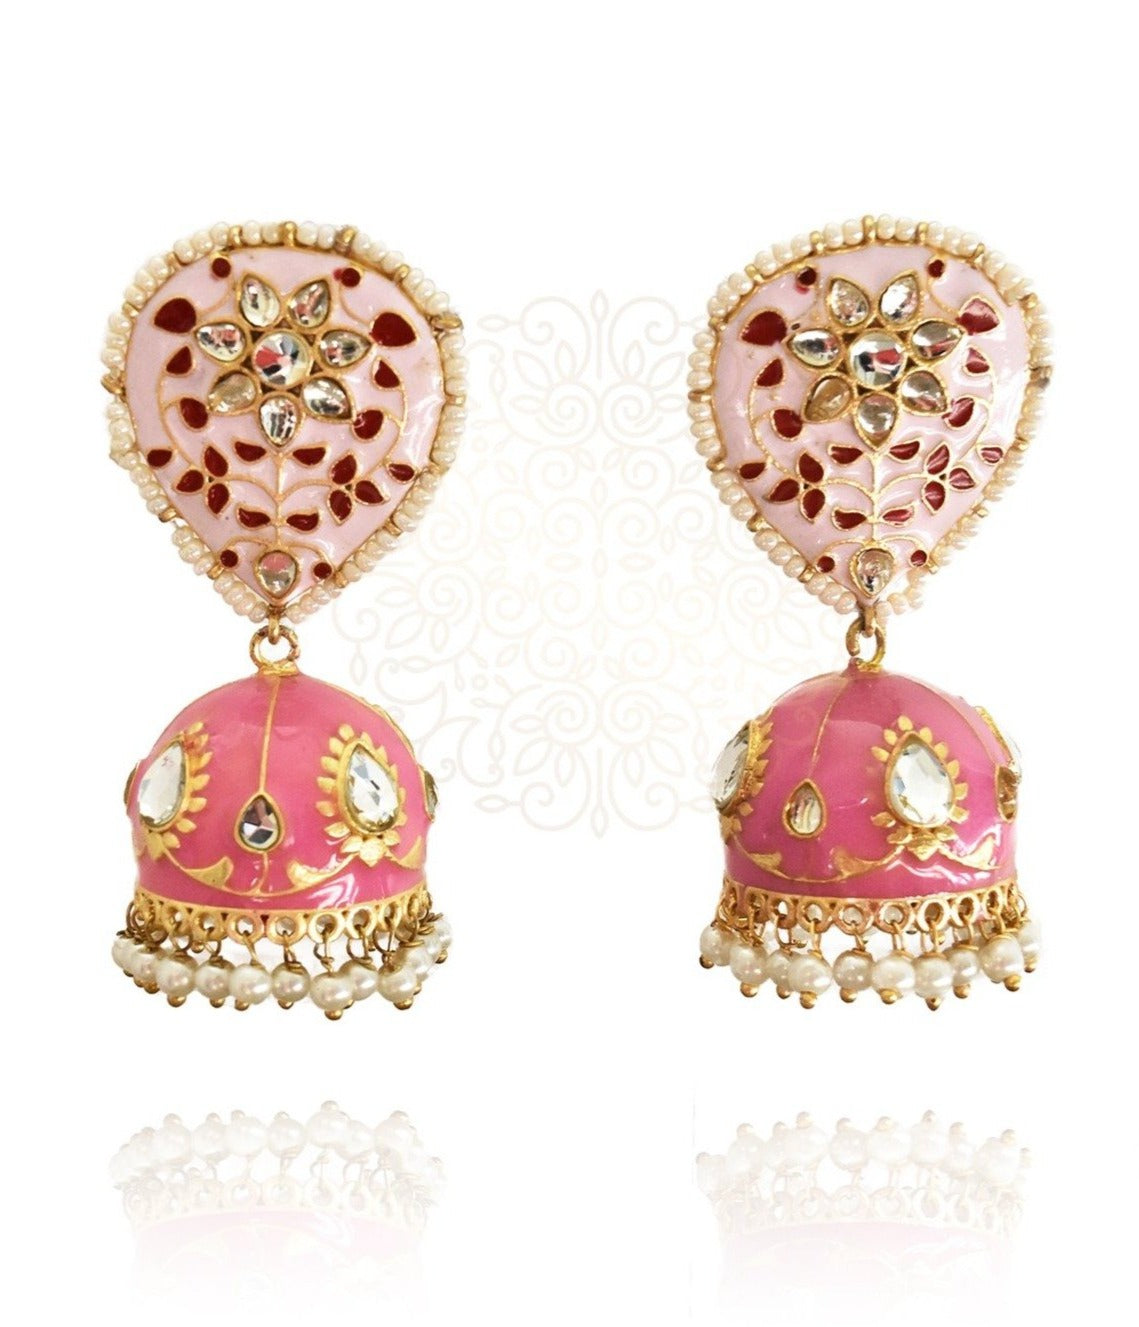 Gulnar Pink Enameled Jhumka Earrings - The Pashm